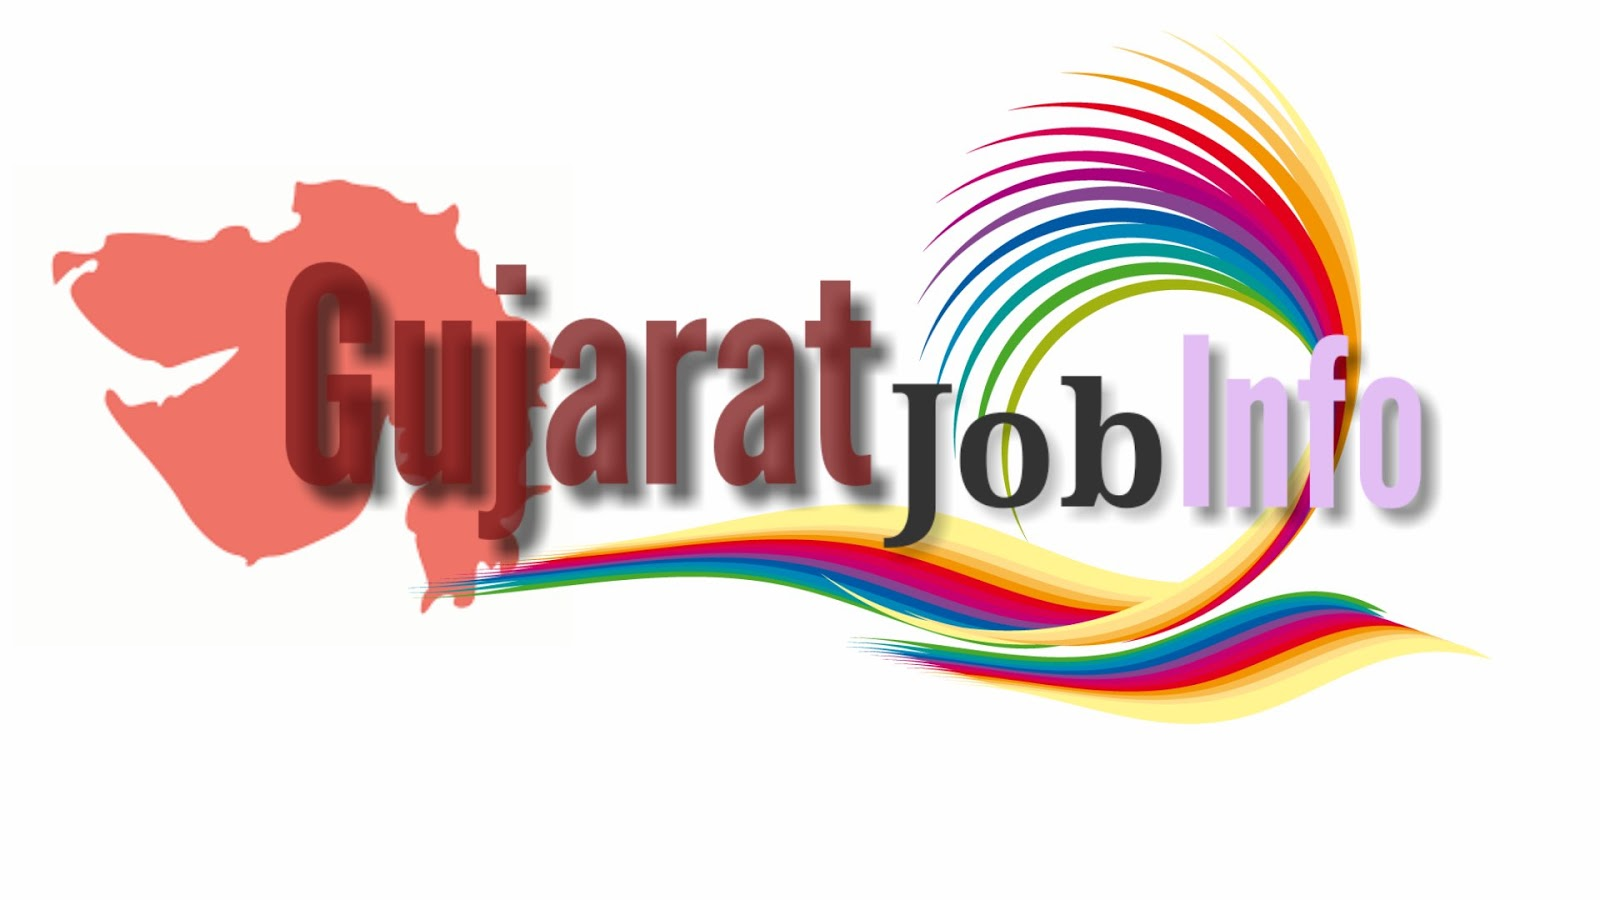 About gujarat job info website.